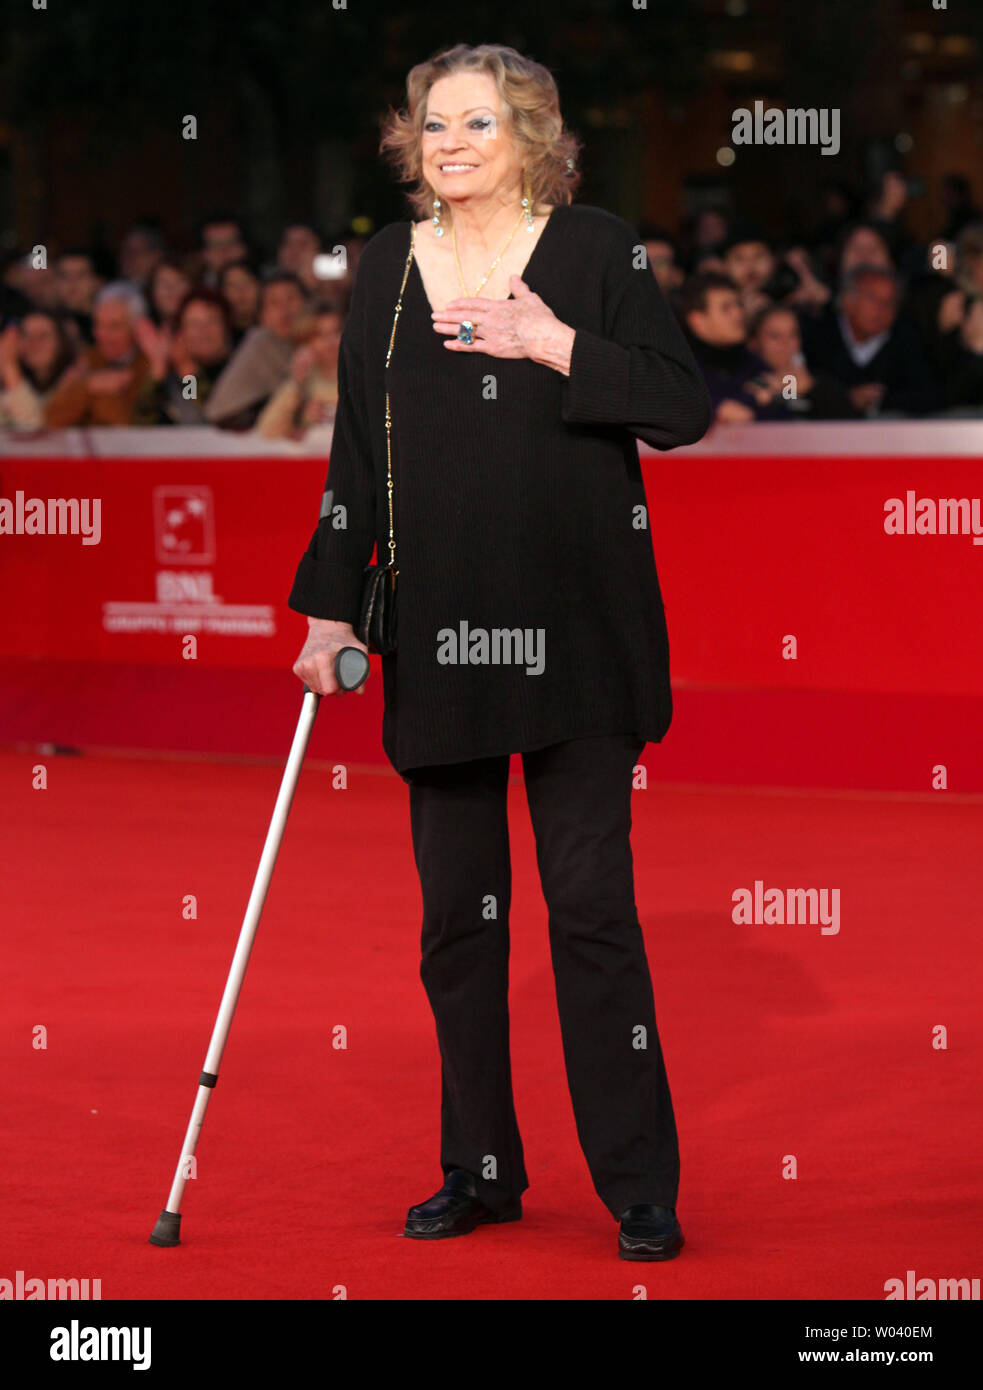 Anita Ekberg arrives on the red carpet before the screening of a digitally restored version of the 1960 classic film 'La Dolce Vita' during the 5th Rome International Film Festival in Rome on October 30, 2010.   Ekberg is best known for her role as Sylvia in the film, which features the legendary scene of her cavorting in Trevi Fountain.   UPI/David Silpa - Stock Image